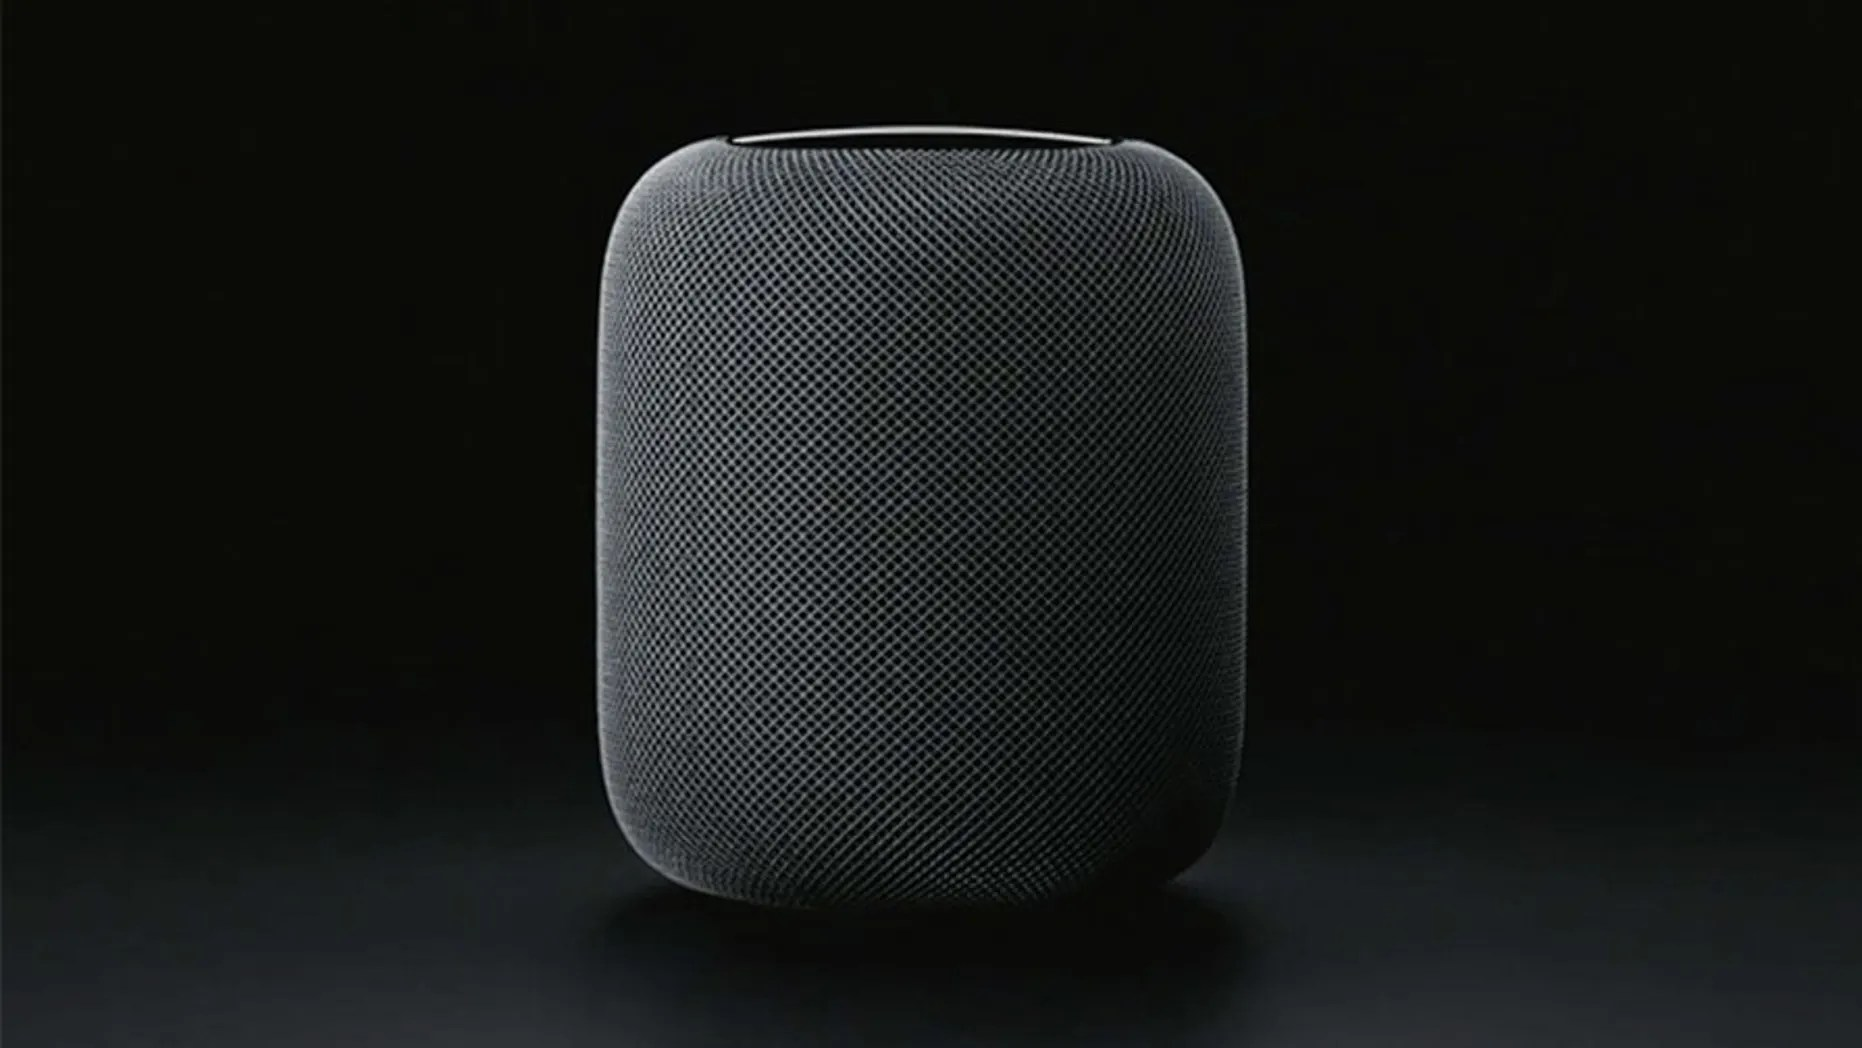 Apple's HomePod (Credit: Apple)